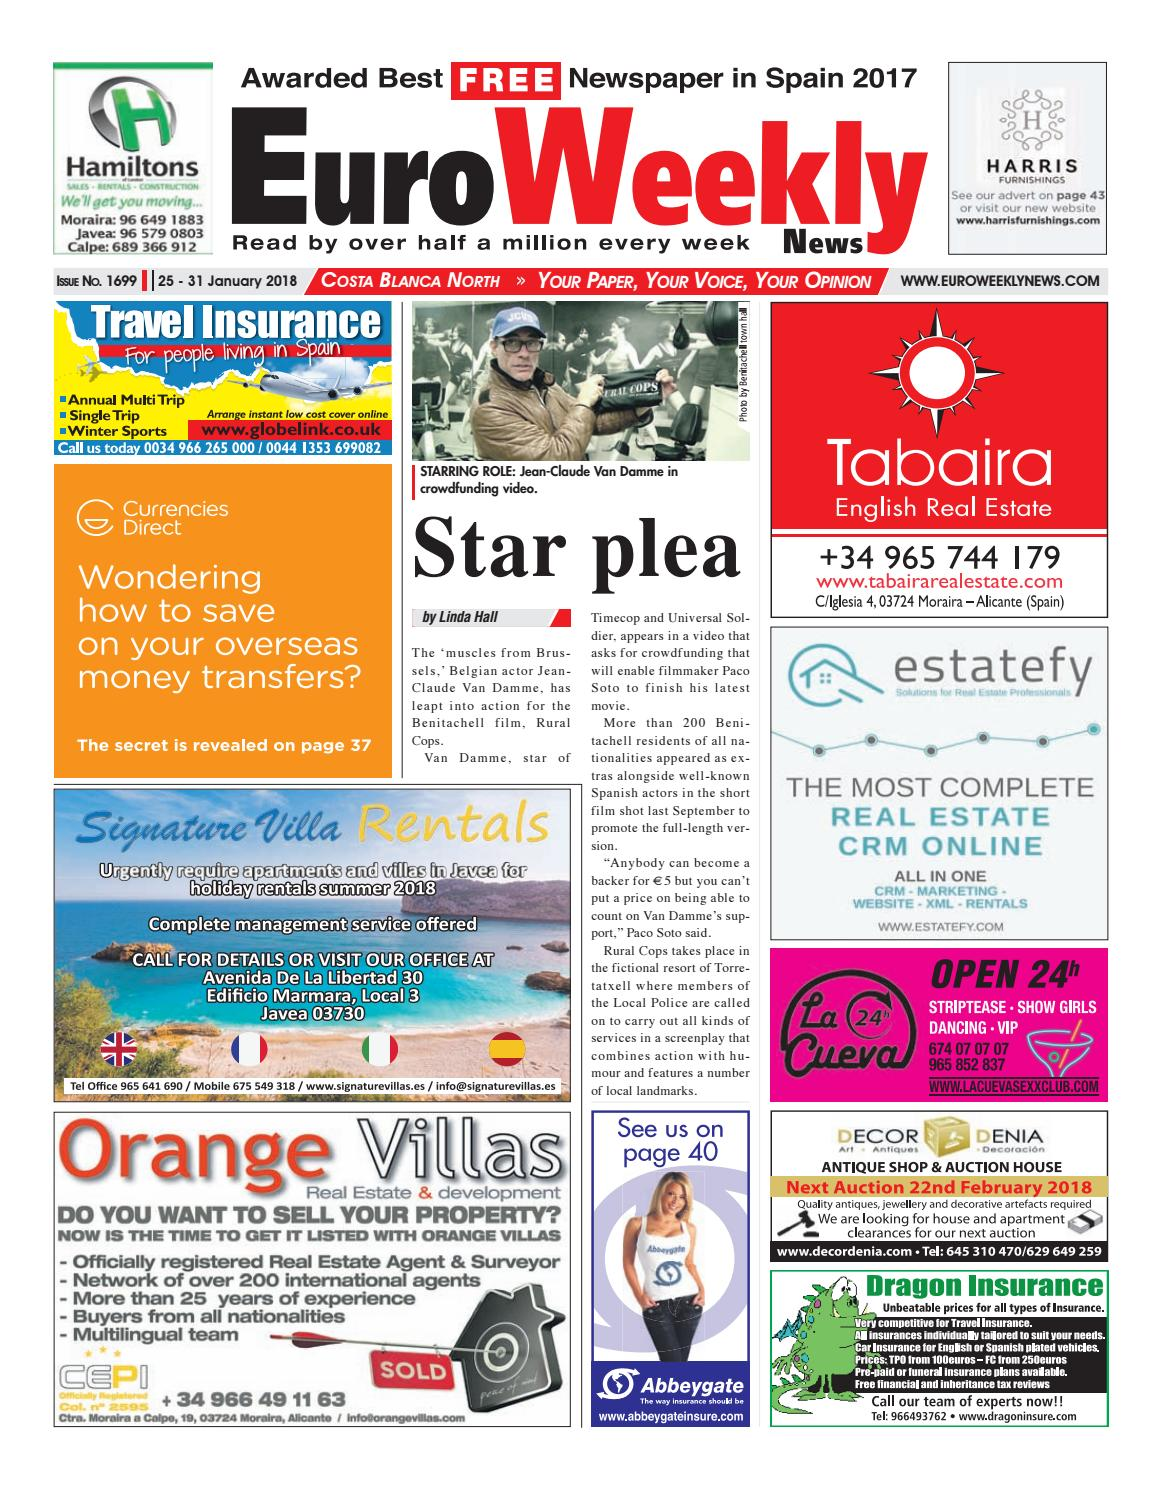 Euro Weekly News - Costa Blanca North 25 - 31 January 2018 Issue 1699